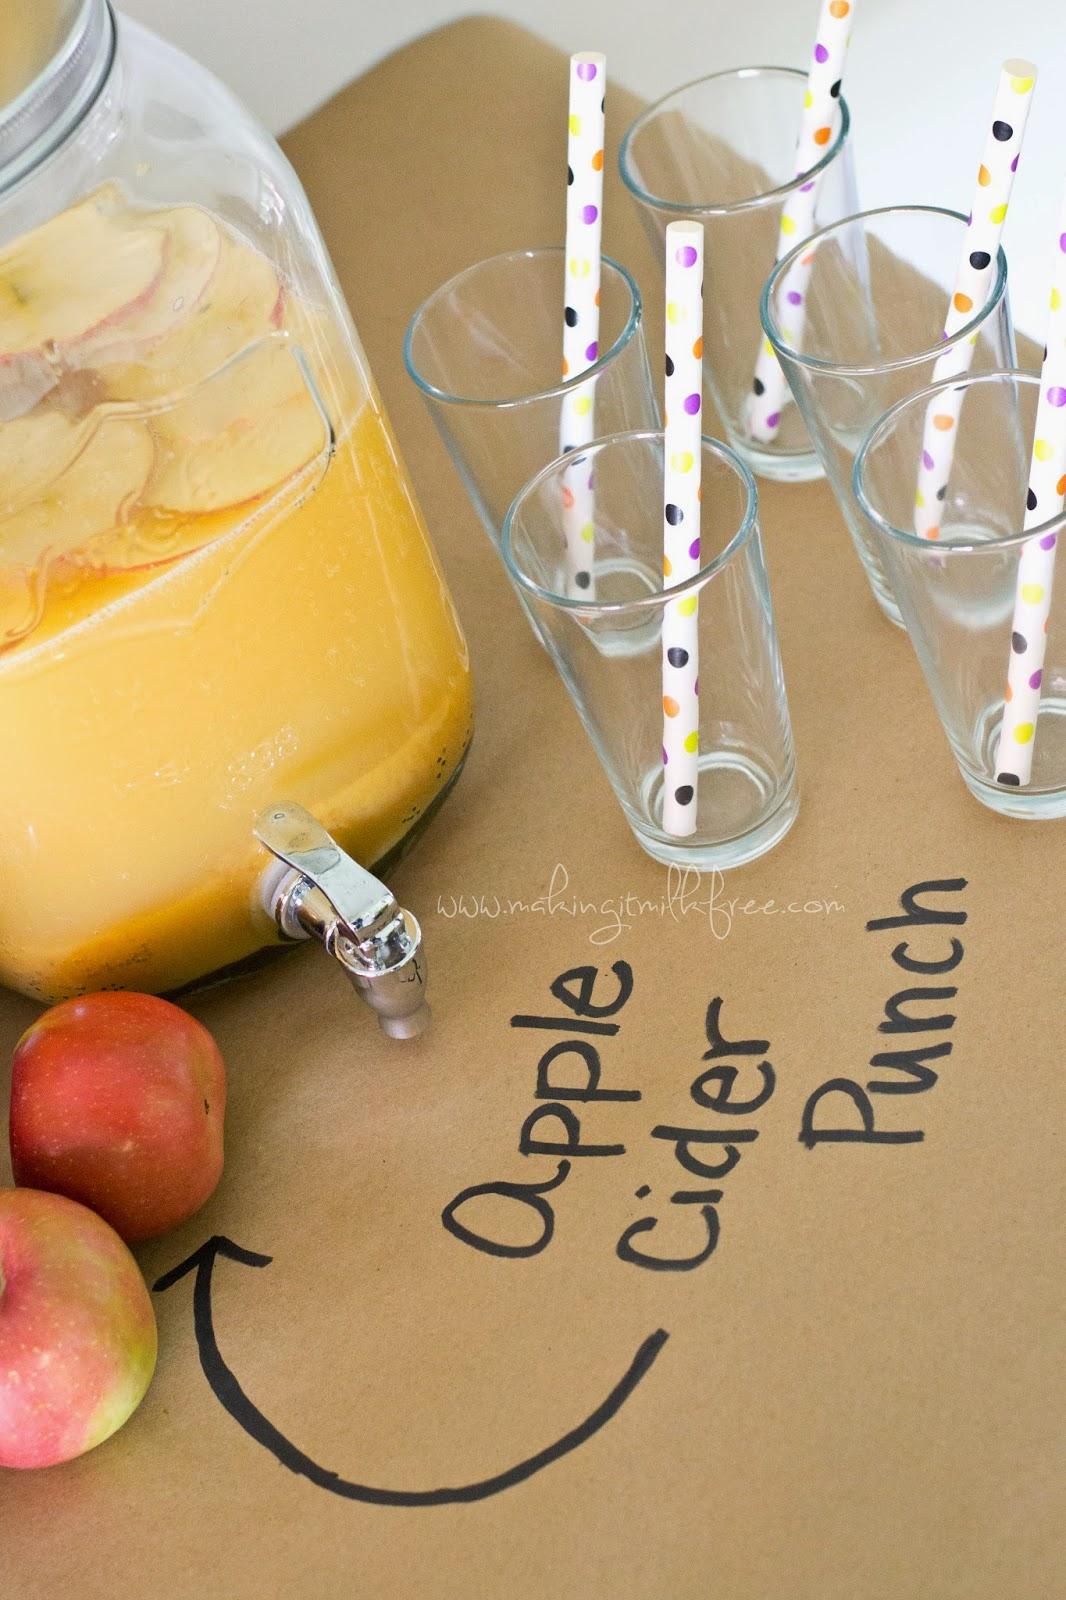 #glutenfree #dairyfree #applecider #punch #fall #party